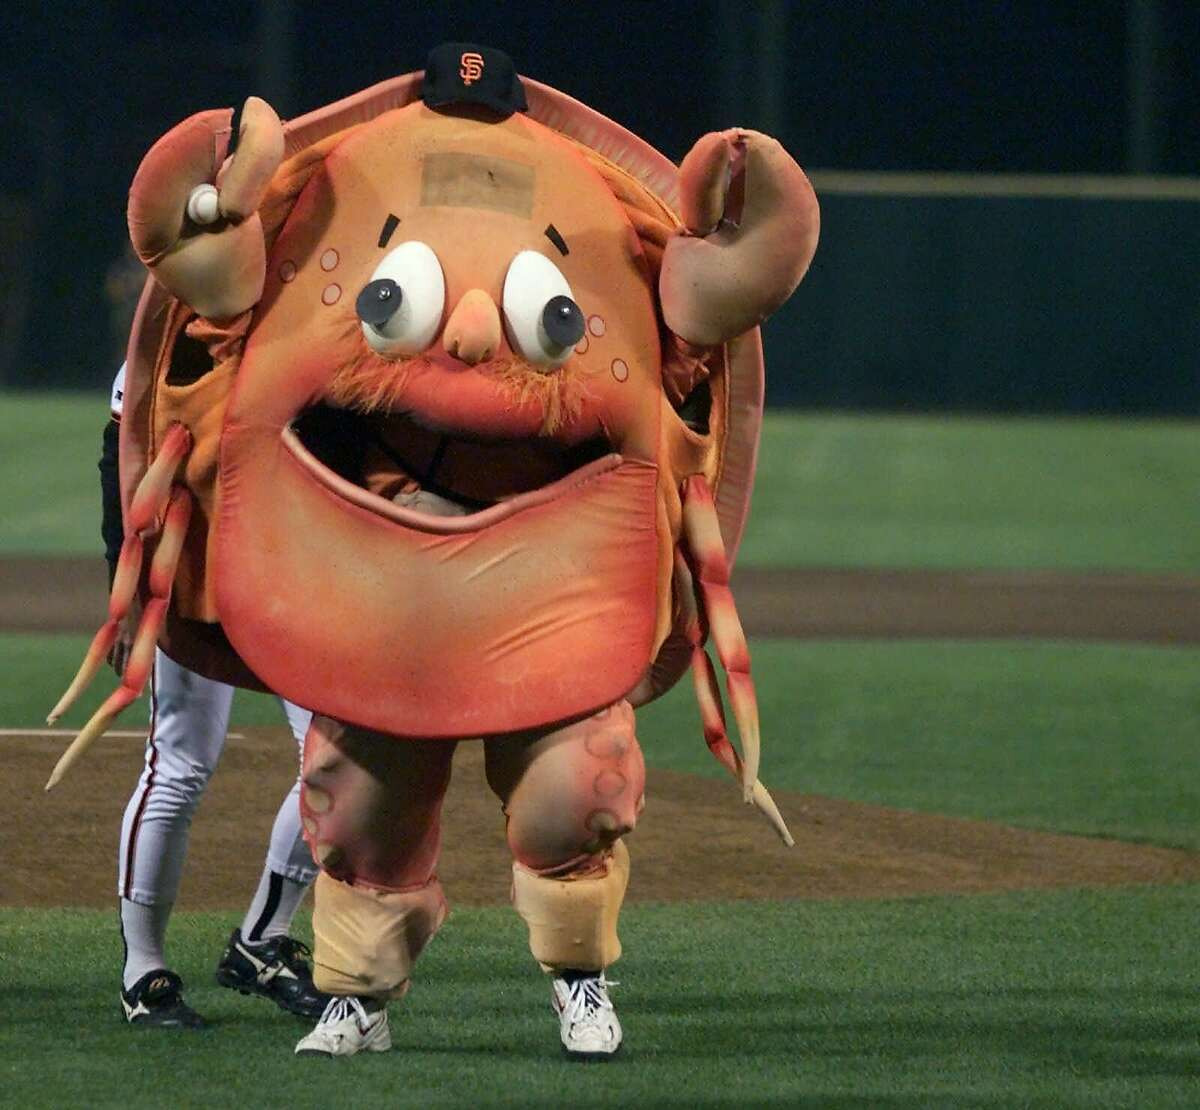 """Crazy Crab - San Francisco Giants The San Francisco Giants introduced Crazy Crab to Major League Baseball in 1984, toward the end of the mascot craze in professional baseball. The """"anti-mascot"""" was meant to parody other teams' attempts to introduce mascots to their fans in the late '70s and early '80s. The Crab, played by actor Wayne Doba, harshly criticized the team in interviews, and fans were encouraged to dislike and boo the crab. Fans obliged and went a few steps further. Sometimes they would throw beer bottles and batteries at Crazy Crab during his appearances on the field. With two games left in the Giants season, two players from the San Diego Padres went further still, attacking him on the field and injuring his back."""